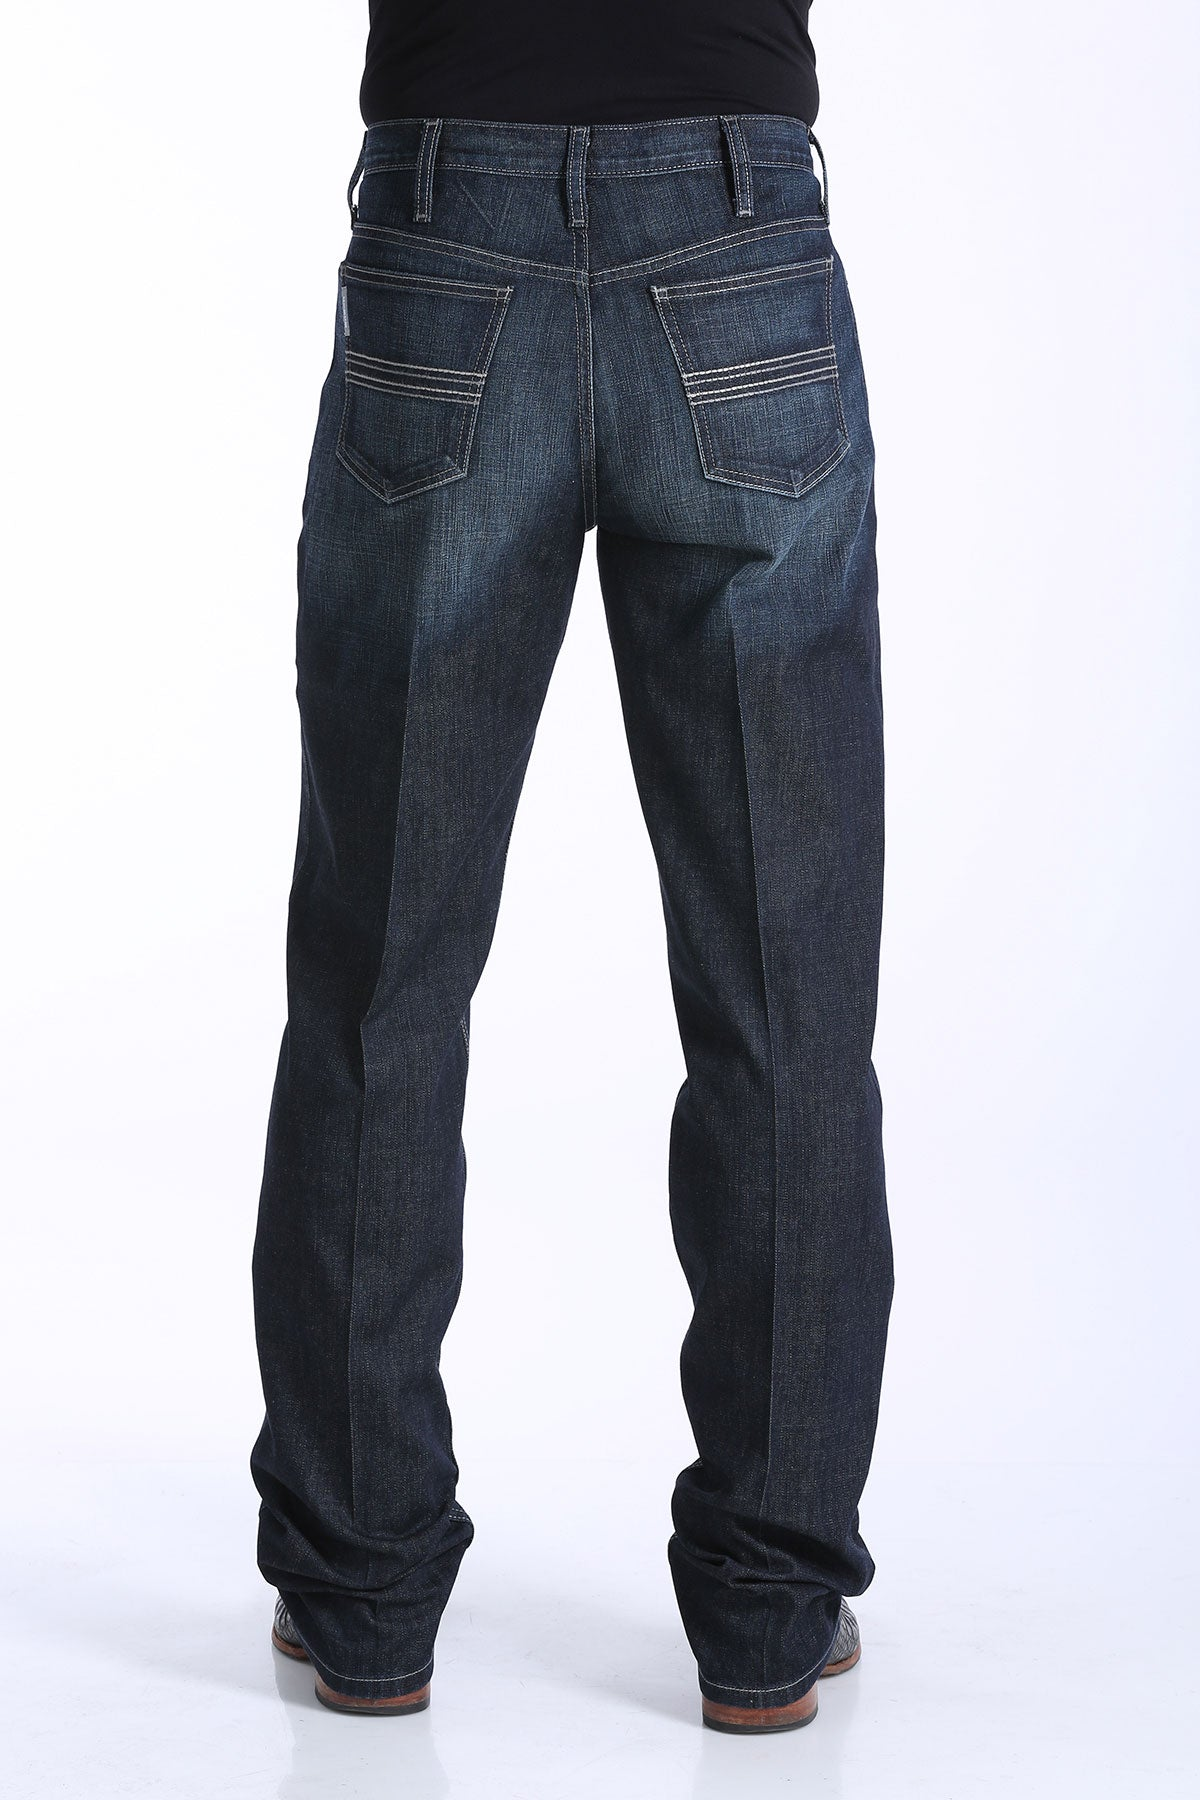 CINCH Men's Silver Label Performance Denim - Dark Rinse